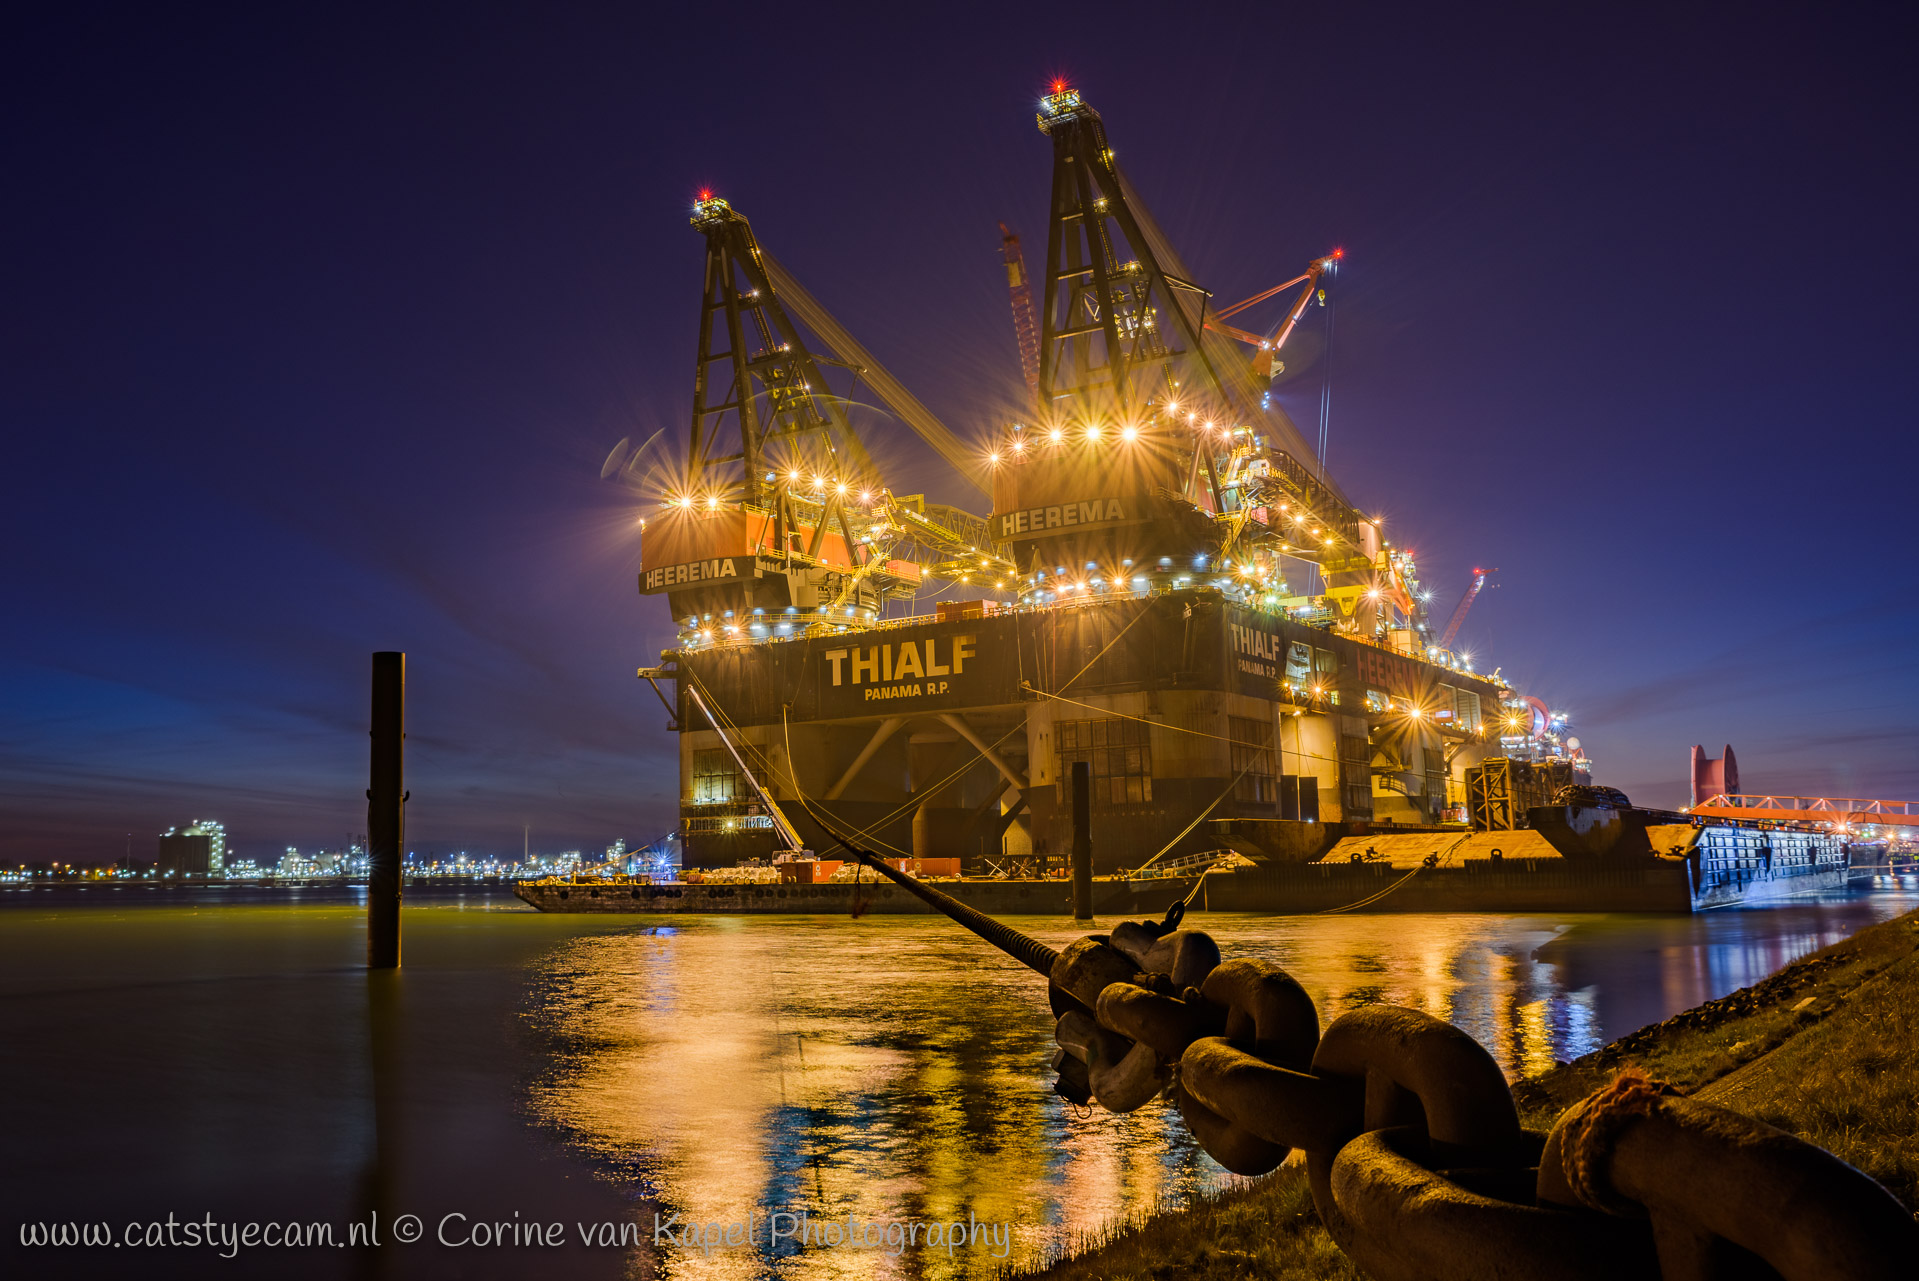 Crane vessel Thialf by night at the Calandkanaal